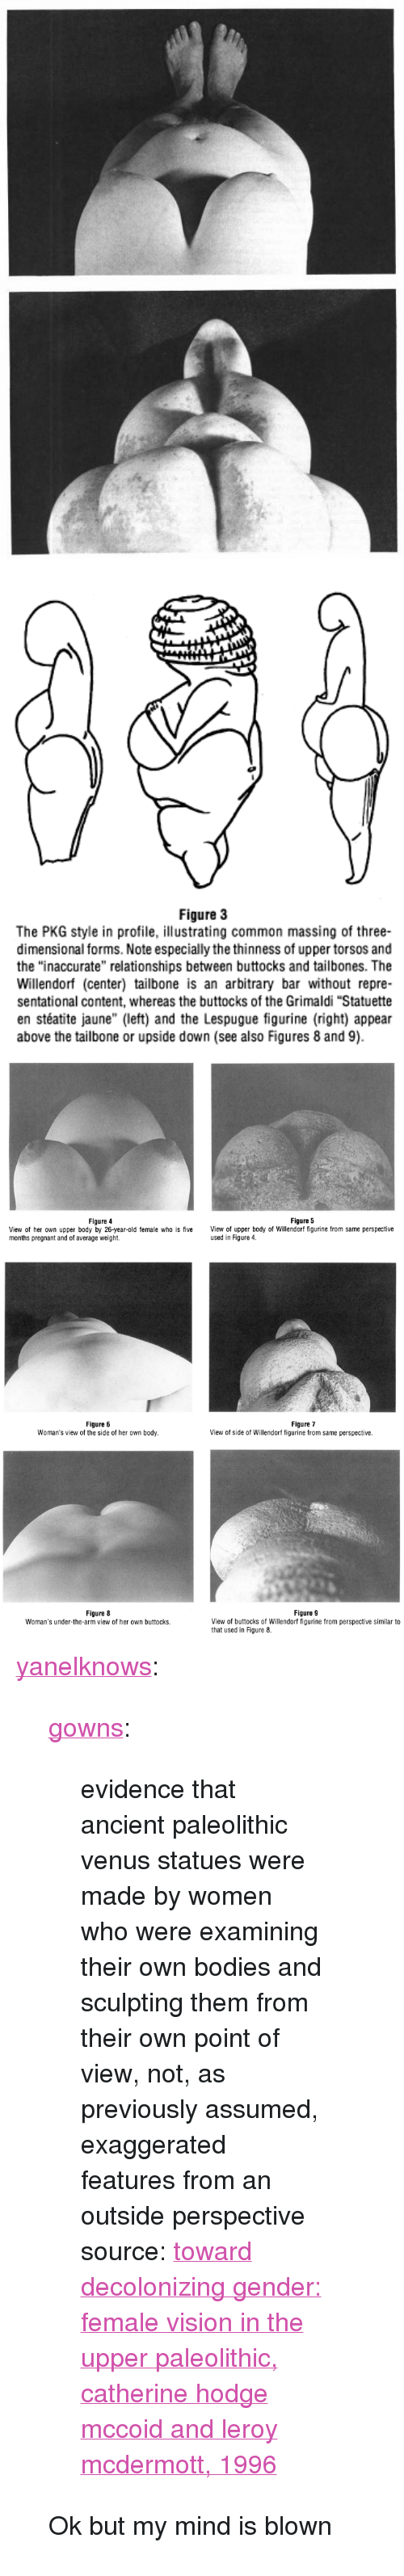 """Leroy: Figure 3  The PKG style in profile, illustrating common massing of three-  dimensional forms. Note especially the thinness of upper torsos and  the """"inaccurate"""" relationships between buttocks and tailbones. The  Willendorf (center) tailbone is an arbitrary bar without repre-  sentational content, whereas the buttocks of the Grimaldi """"Statuette  en stéatite jaune"""" (left) and the Lespugue figurine (right) appear  above the tailbone or upside down (see also Figures 8 and 9).   Figure 4  Figure 5  View of her own upper body by 26-year-old female who is five View of upper body of Willendorf figurine from same perspective  months pregnant and of average weight.  used in Figure 4   Figure 6  Woman's view of the side of her own body.  Figure 7  View of side of Willendorf figurine from same perspective.   Figure 8  Woman's under-the-arm view of her own buttocks.  Figure 9  View of buttocks of Willendorf figurine from perspective similar to  that used in Figure 8 <p><a href=""""http://yanelknows.tumblr.com/post/167147214107/gowns-evidence-that-ancient-paleolithic-venus"""" class=""""tumblr_blog"""">yanelknows</a>:</p><blockquote> <p><a href=""""http://gowns.tumblr.com/post/167128831158/evidence-that-ancient-paleolithic-venus-statues"""" class=""""tumblr_blog"""">gowns</a>:</p> <blockquote> <p>evidence that ancient paleolithic venus statues were made by women who were examining their own bodies and sculpting them from their own point of view, not, as previously assumed, exaggerated features from an outside perspective</p> <p>source: <a href=""""http://www.kbcc.cuny.edu/academicdepartments/art/Documents/durantaspaleolithicvenus.pdf"""">toward decolonizing gender: female vision in the upper paleolithic, catherine hodge mccoid and leroy mcdermott, 1996</a></p> </blockquote>  <p>Ok but my mind is blown </p> </blockquote>"""